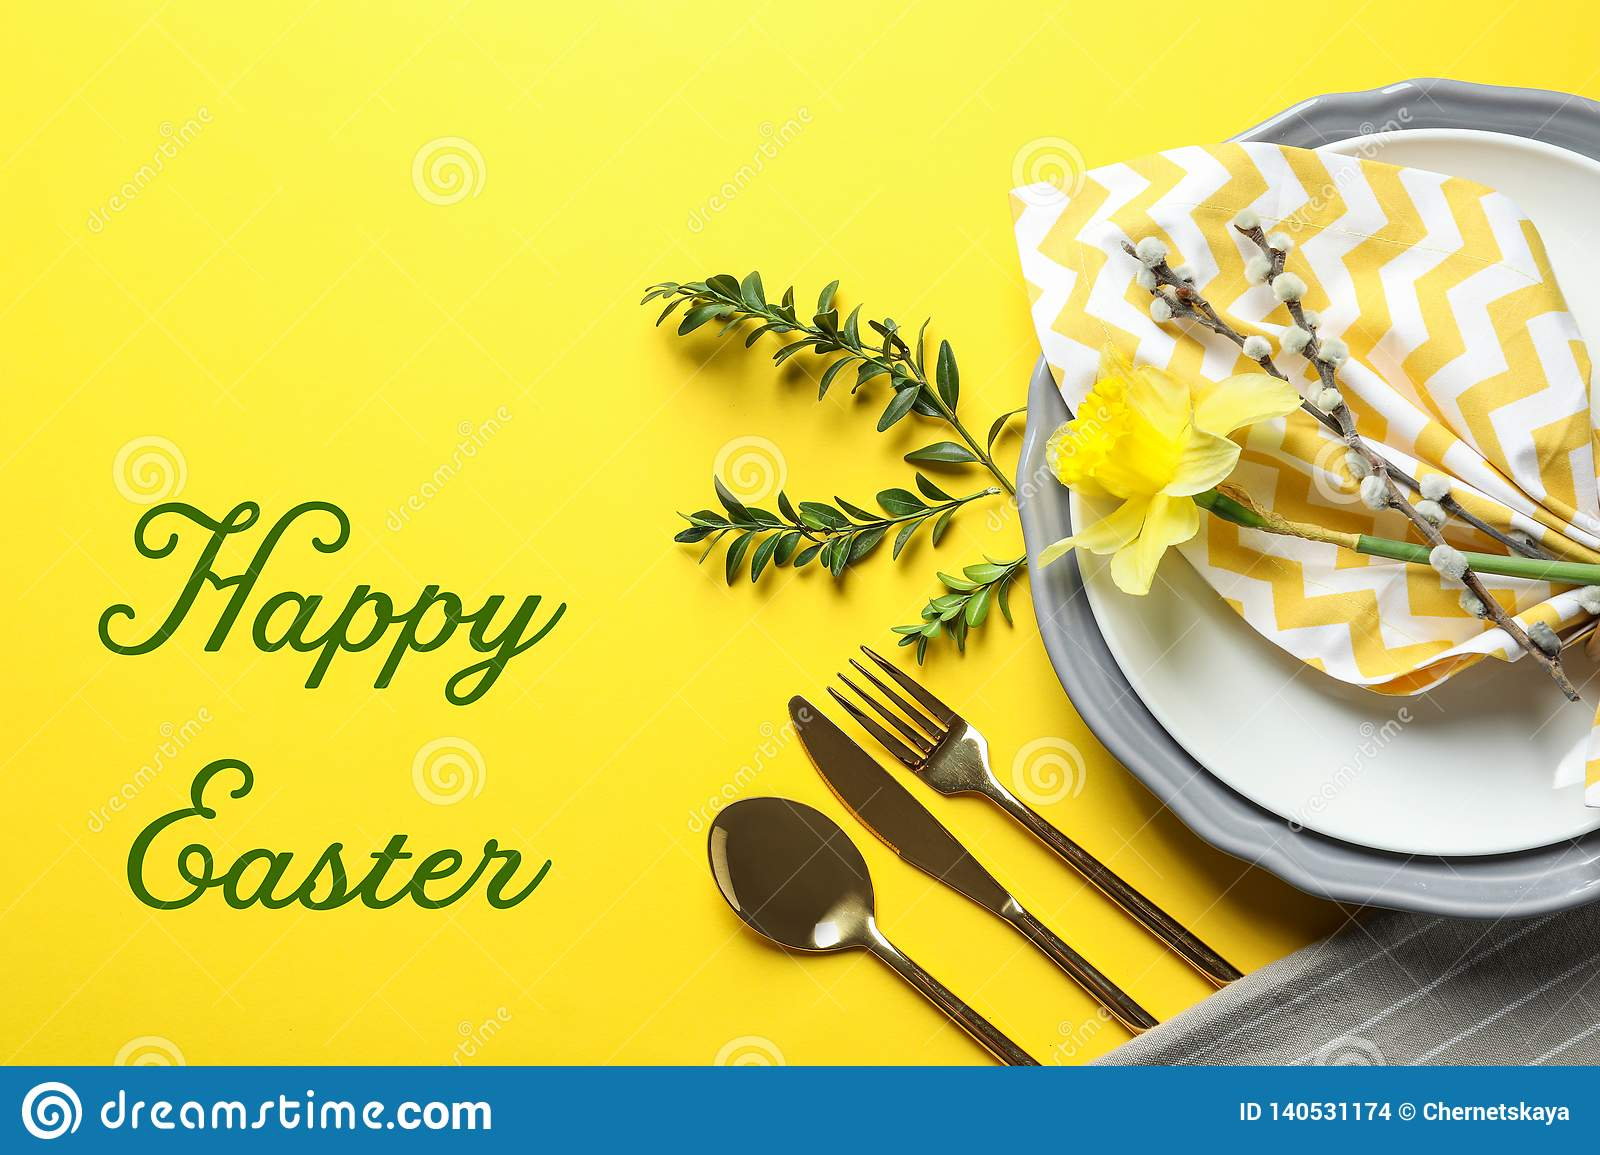 Festive table setting and text happy Easter on color background